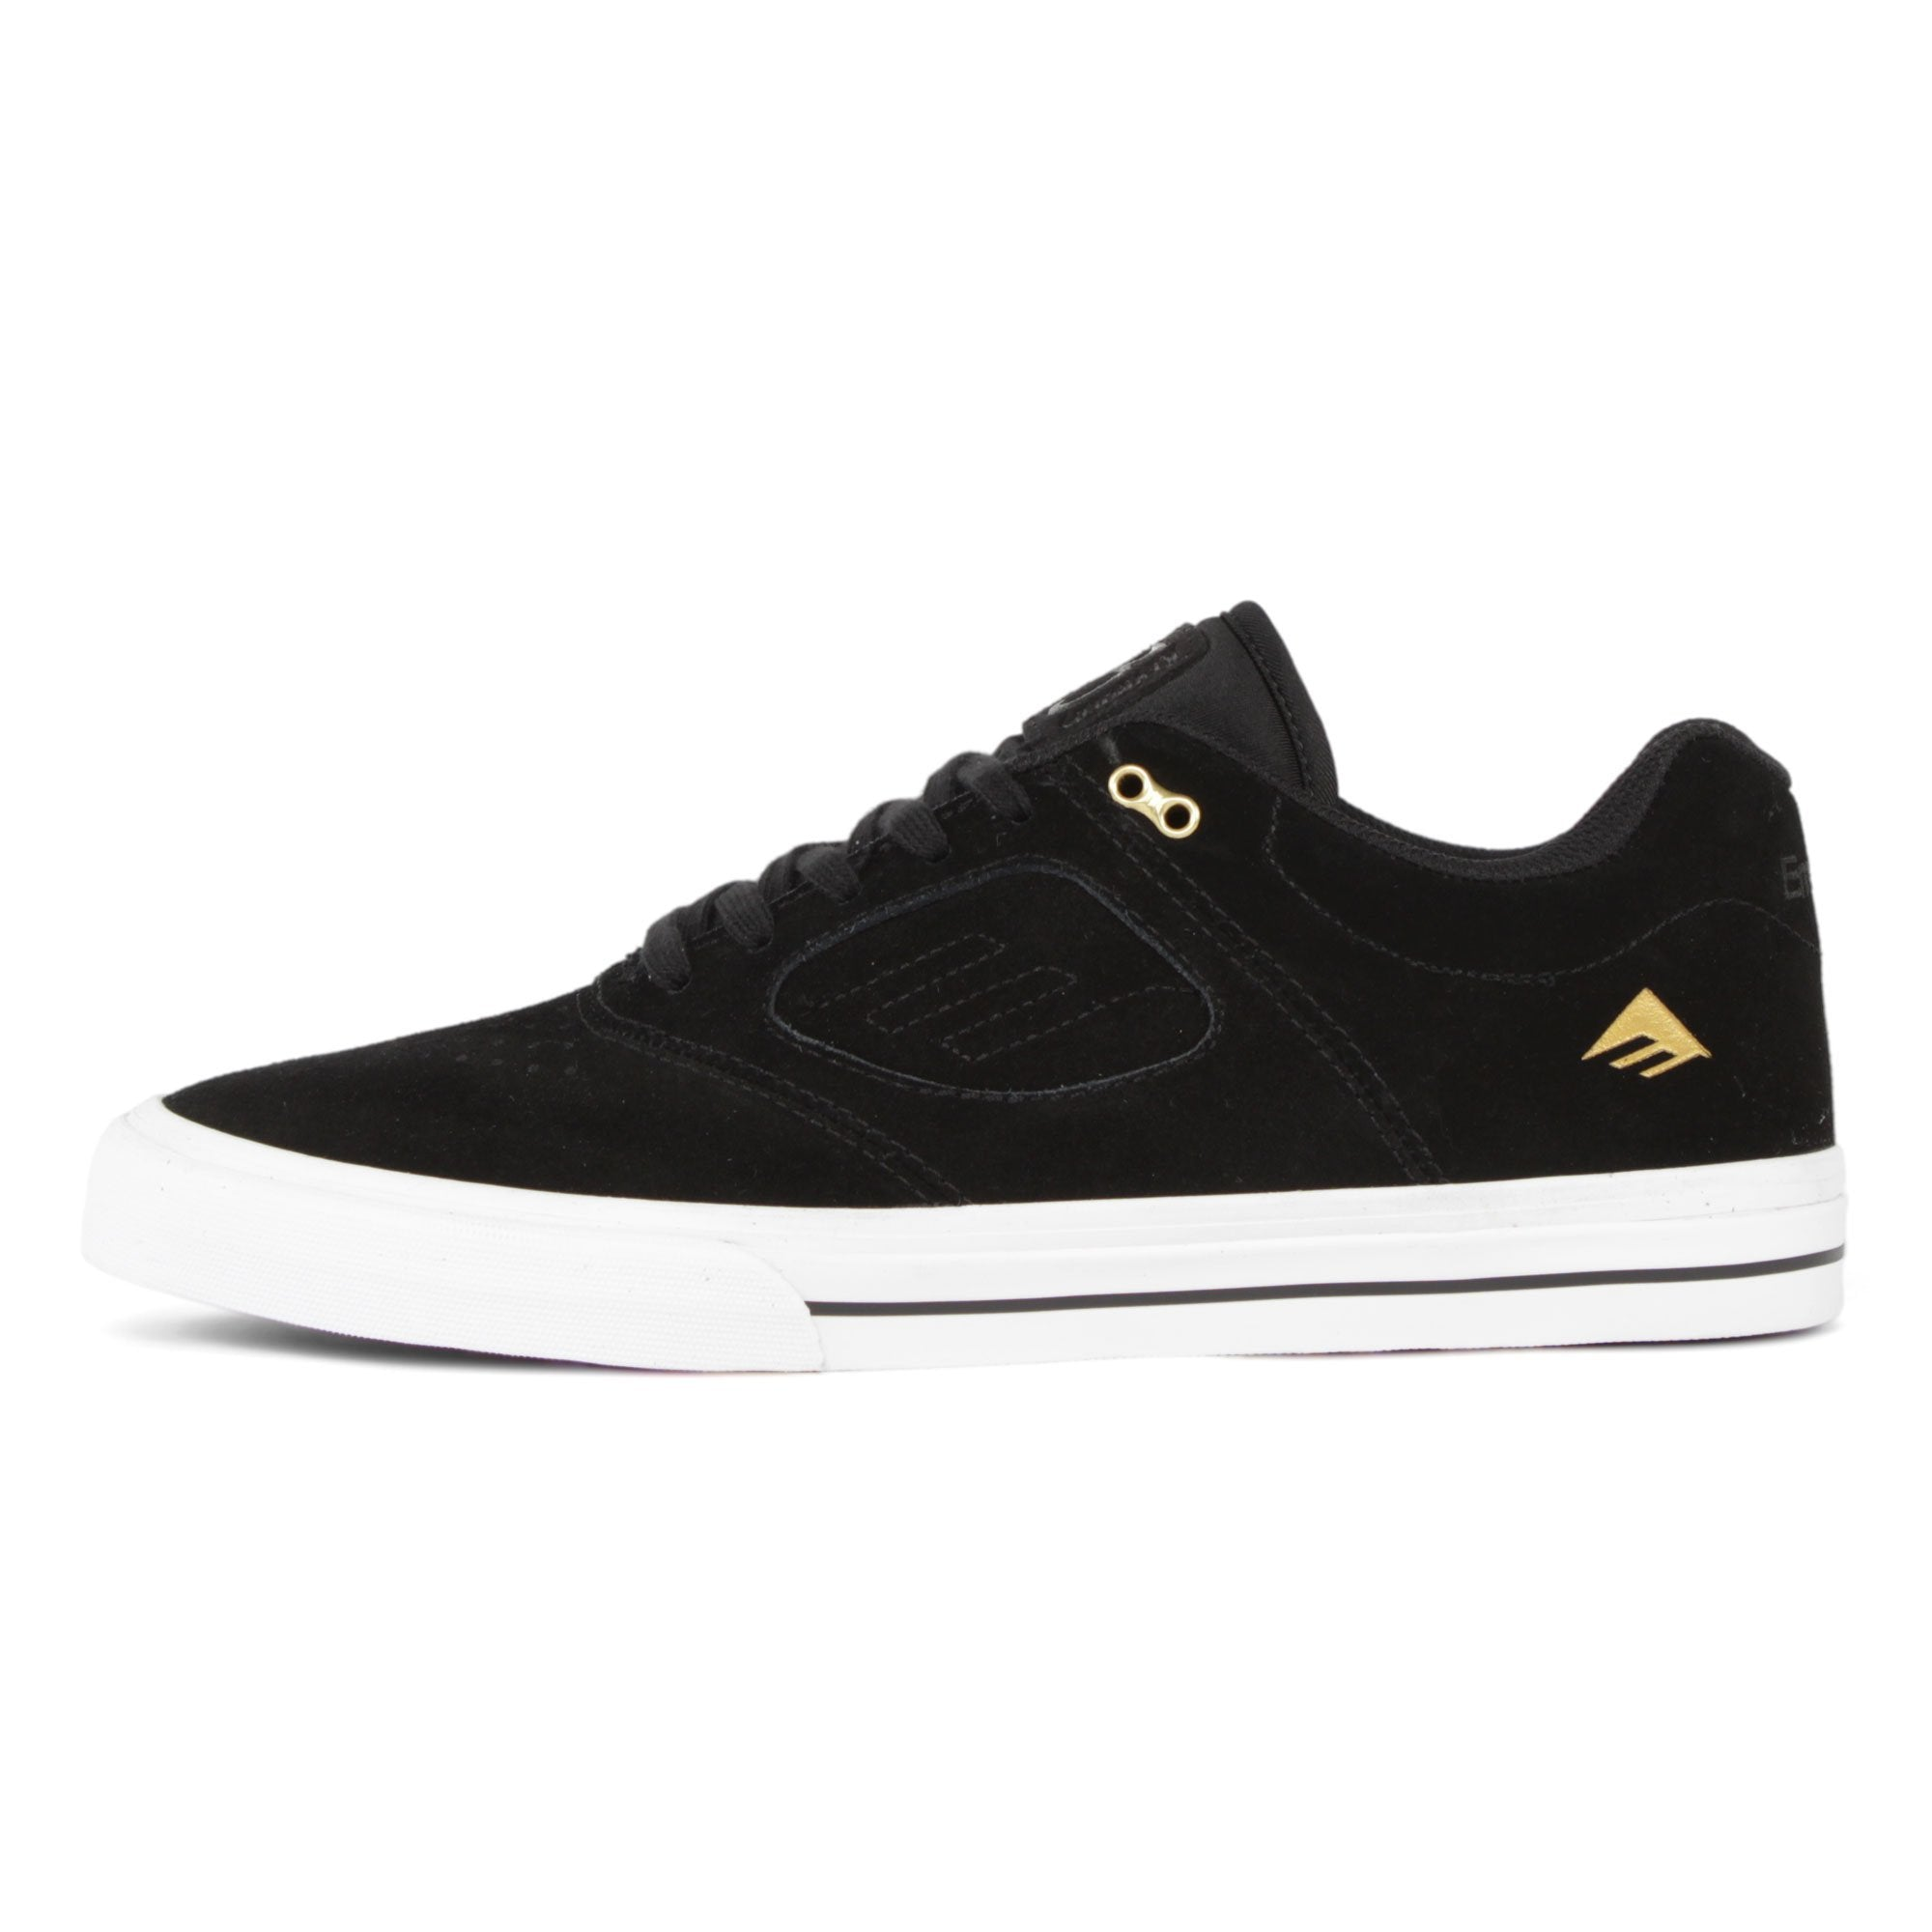 Emerica Reynolds 3 G6 Product Photo #1